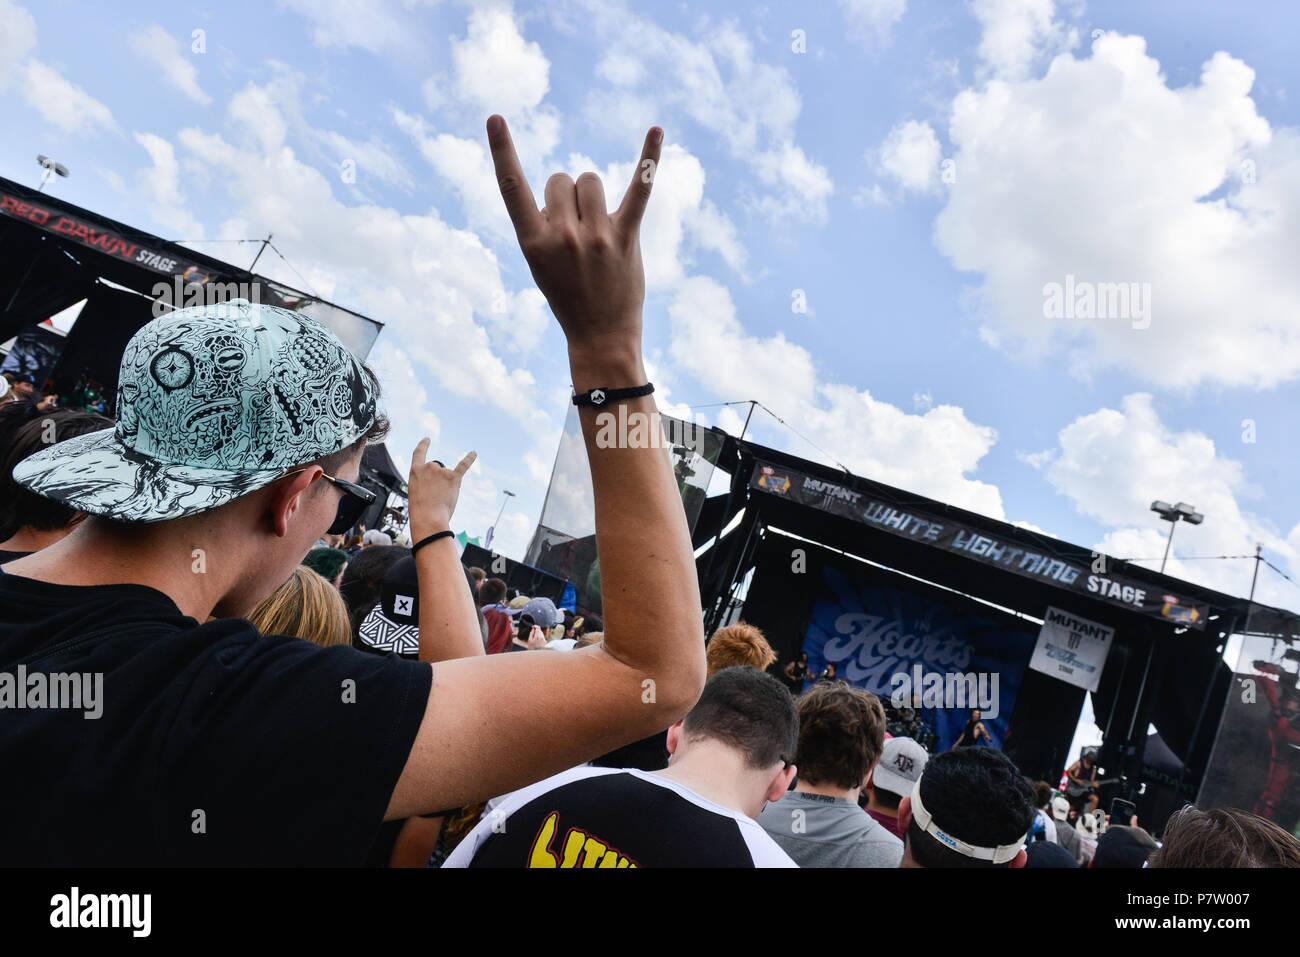 San Antonio, USA. 7th July 2018. Fans cheers bands during the Vans Warped Tour June 7, 2018 in San Antonio, Texas. Credit: Robin Jerstad/Alamy Live News - Stock Image